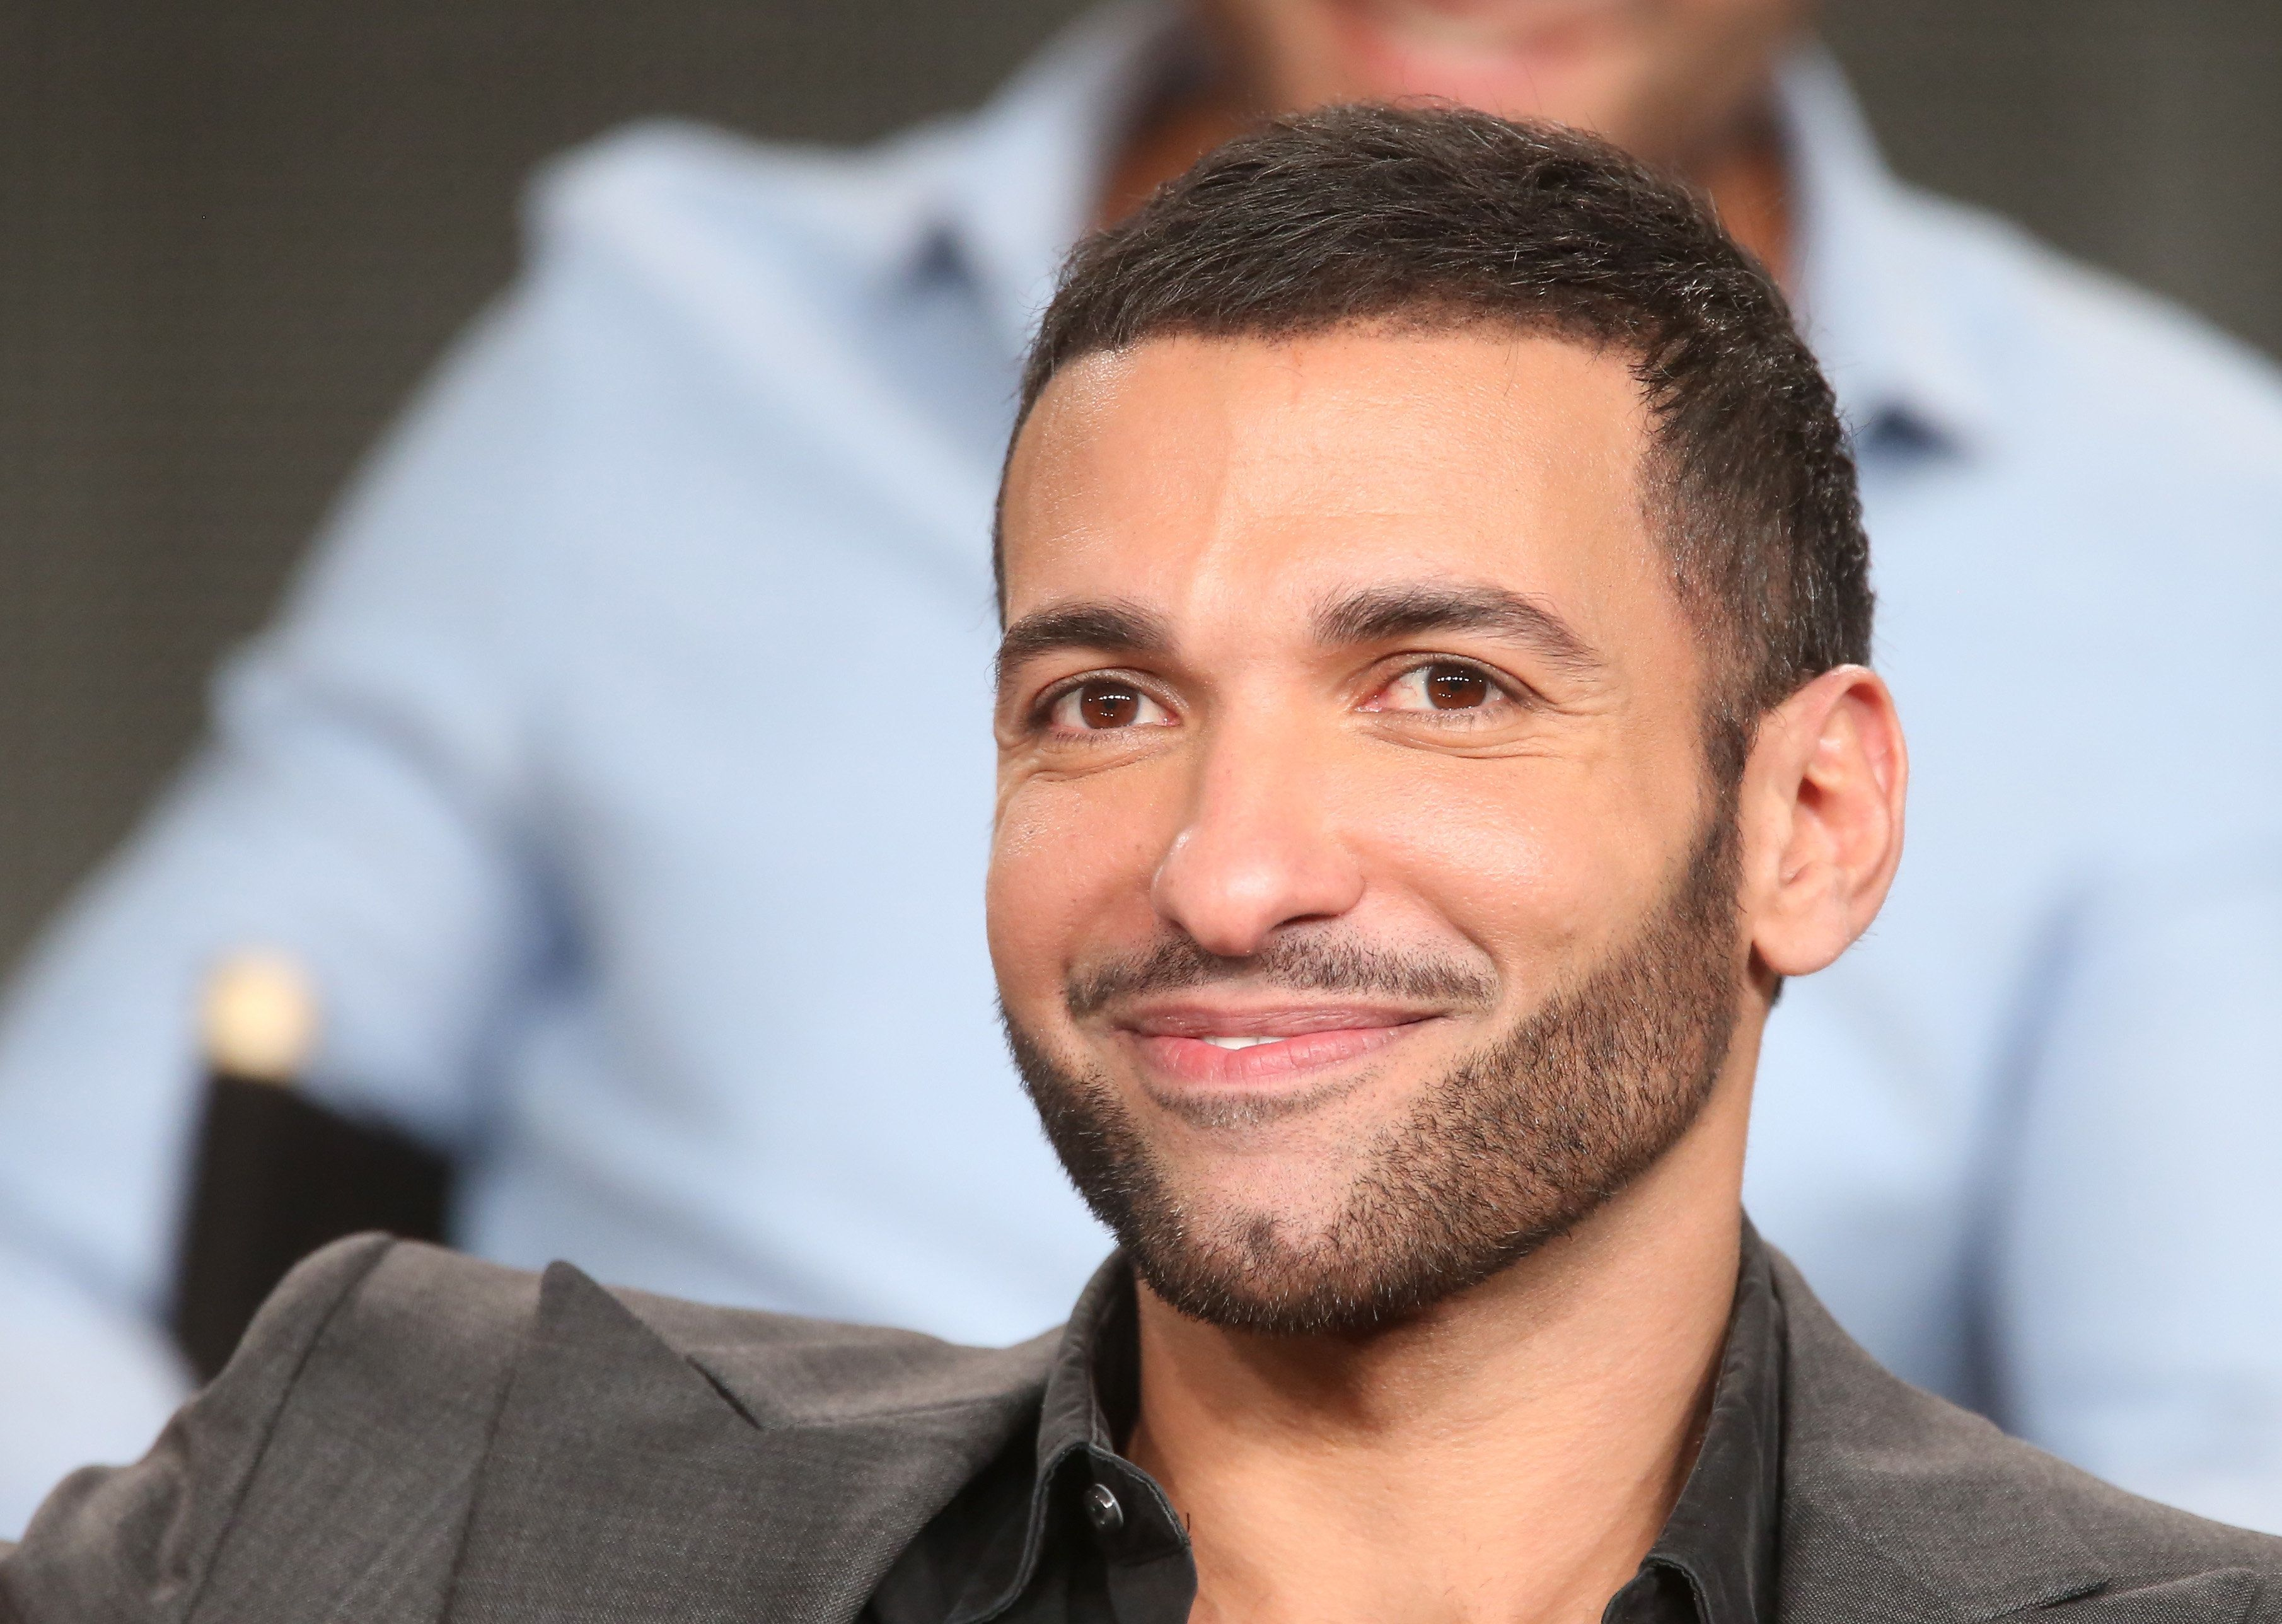 PASADENA, CA - JANUARY 07:  Actors Haaz Sleiman speaks onstage during the National Geographic's 'Killing Jesus' panel at the 2015 Winter Television Critics Association press tour at the Langham Huntington Hotel & Spa on January 7, 2015 in Pasadena, California.  (Photo by Frederick M. Brown/Getty Images)